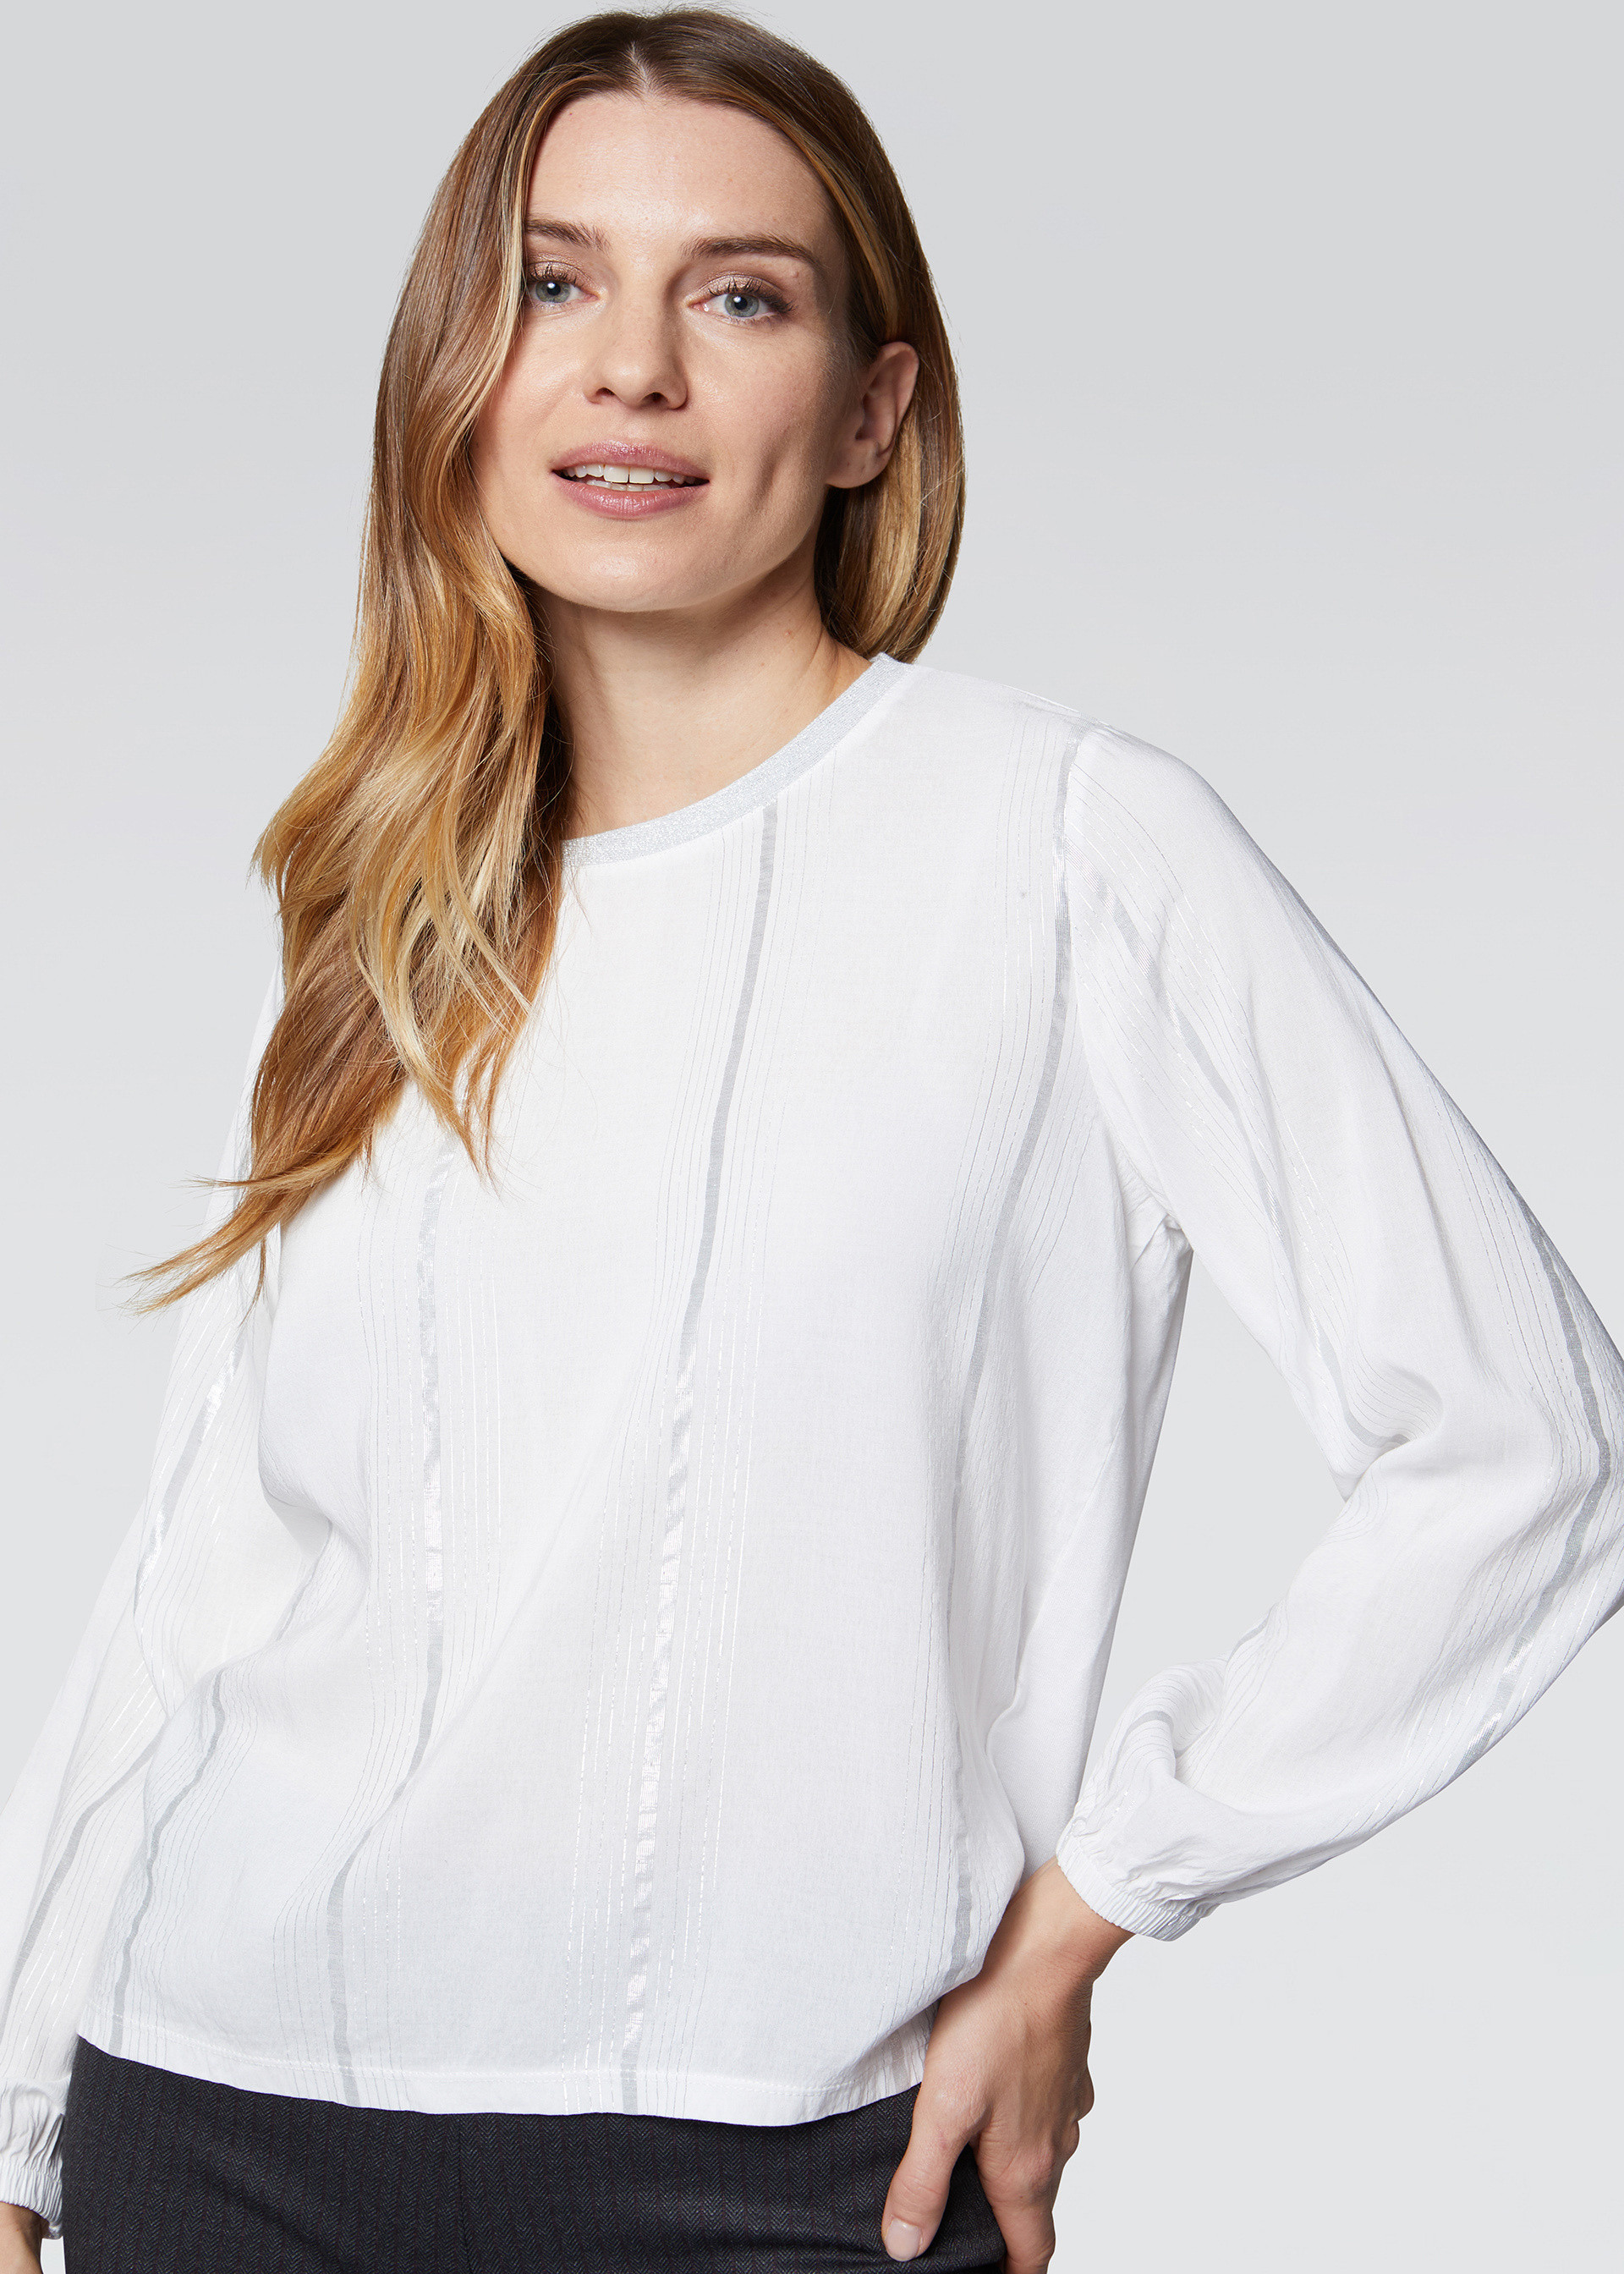 Blusa stampa a righe